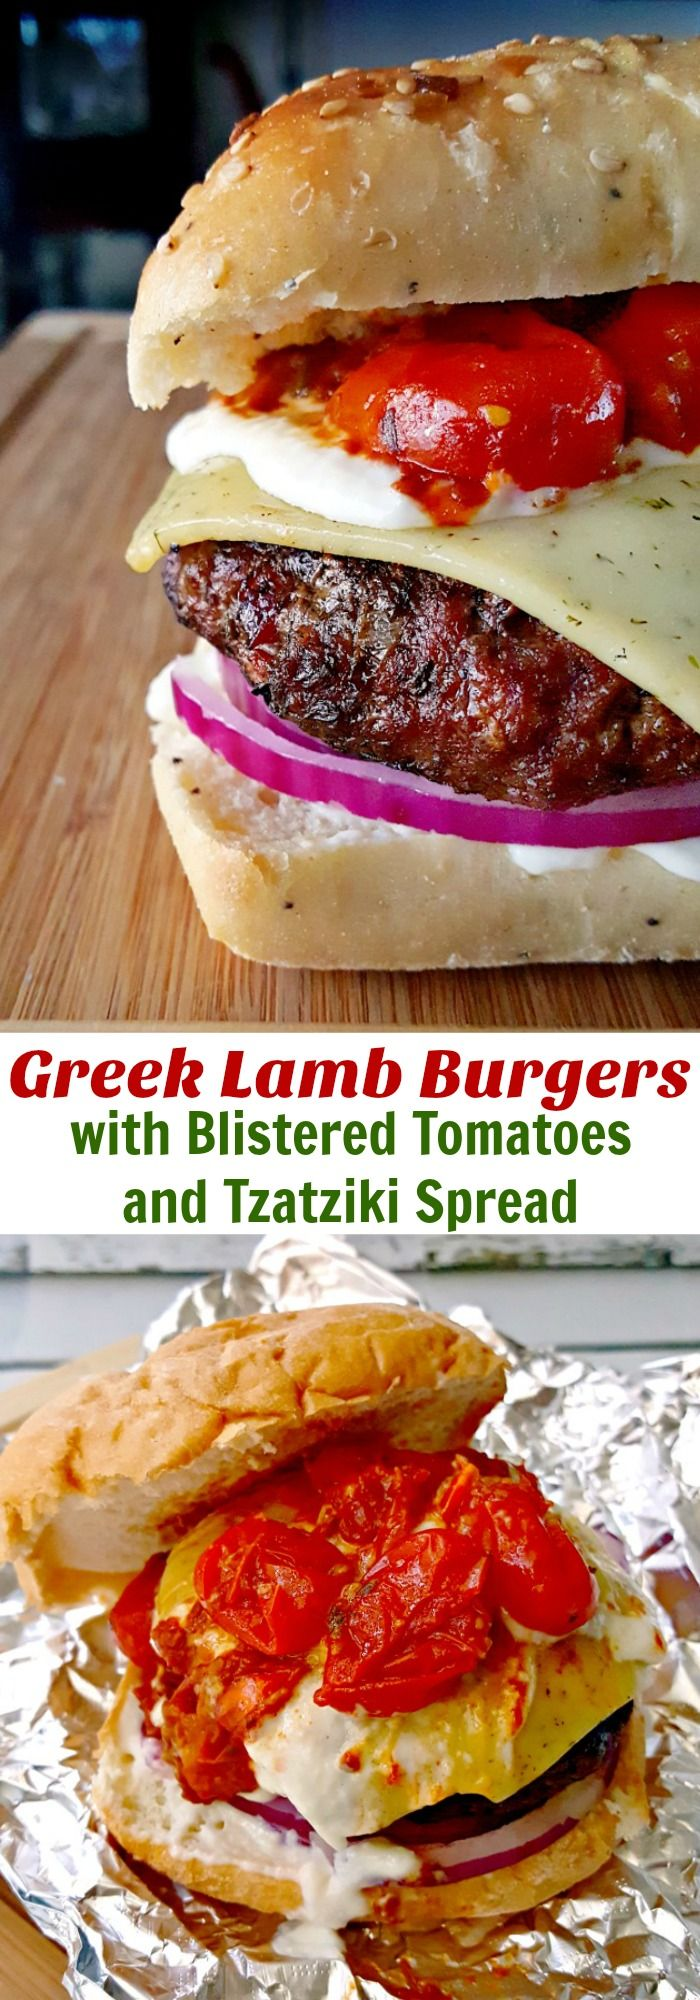 Packed with Greek flavors, these Greek Lamb Burgers with Blistered Tomatoes and Tzatziki Spread sound complicated, but are pretty easy to prepare and will amaze your guests and family. #SundaySupper @akitchenhoor